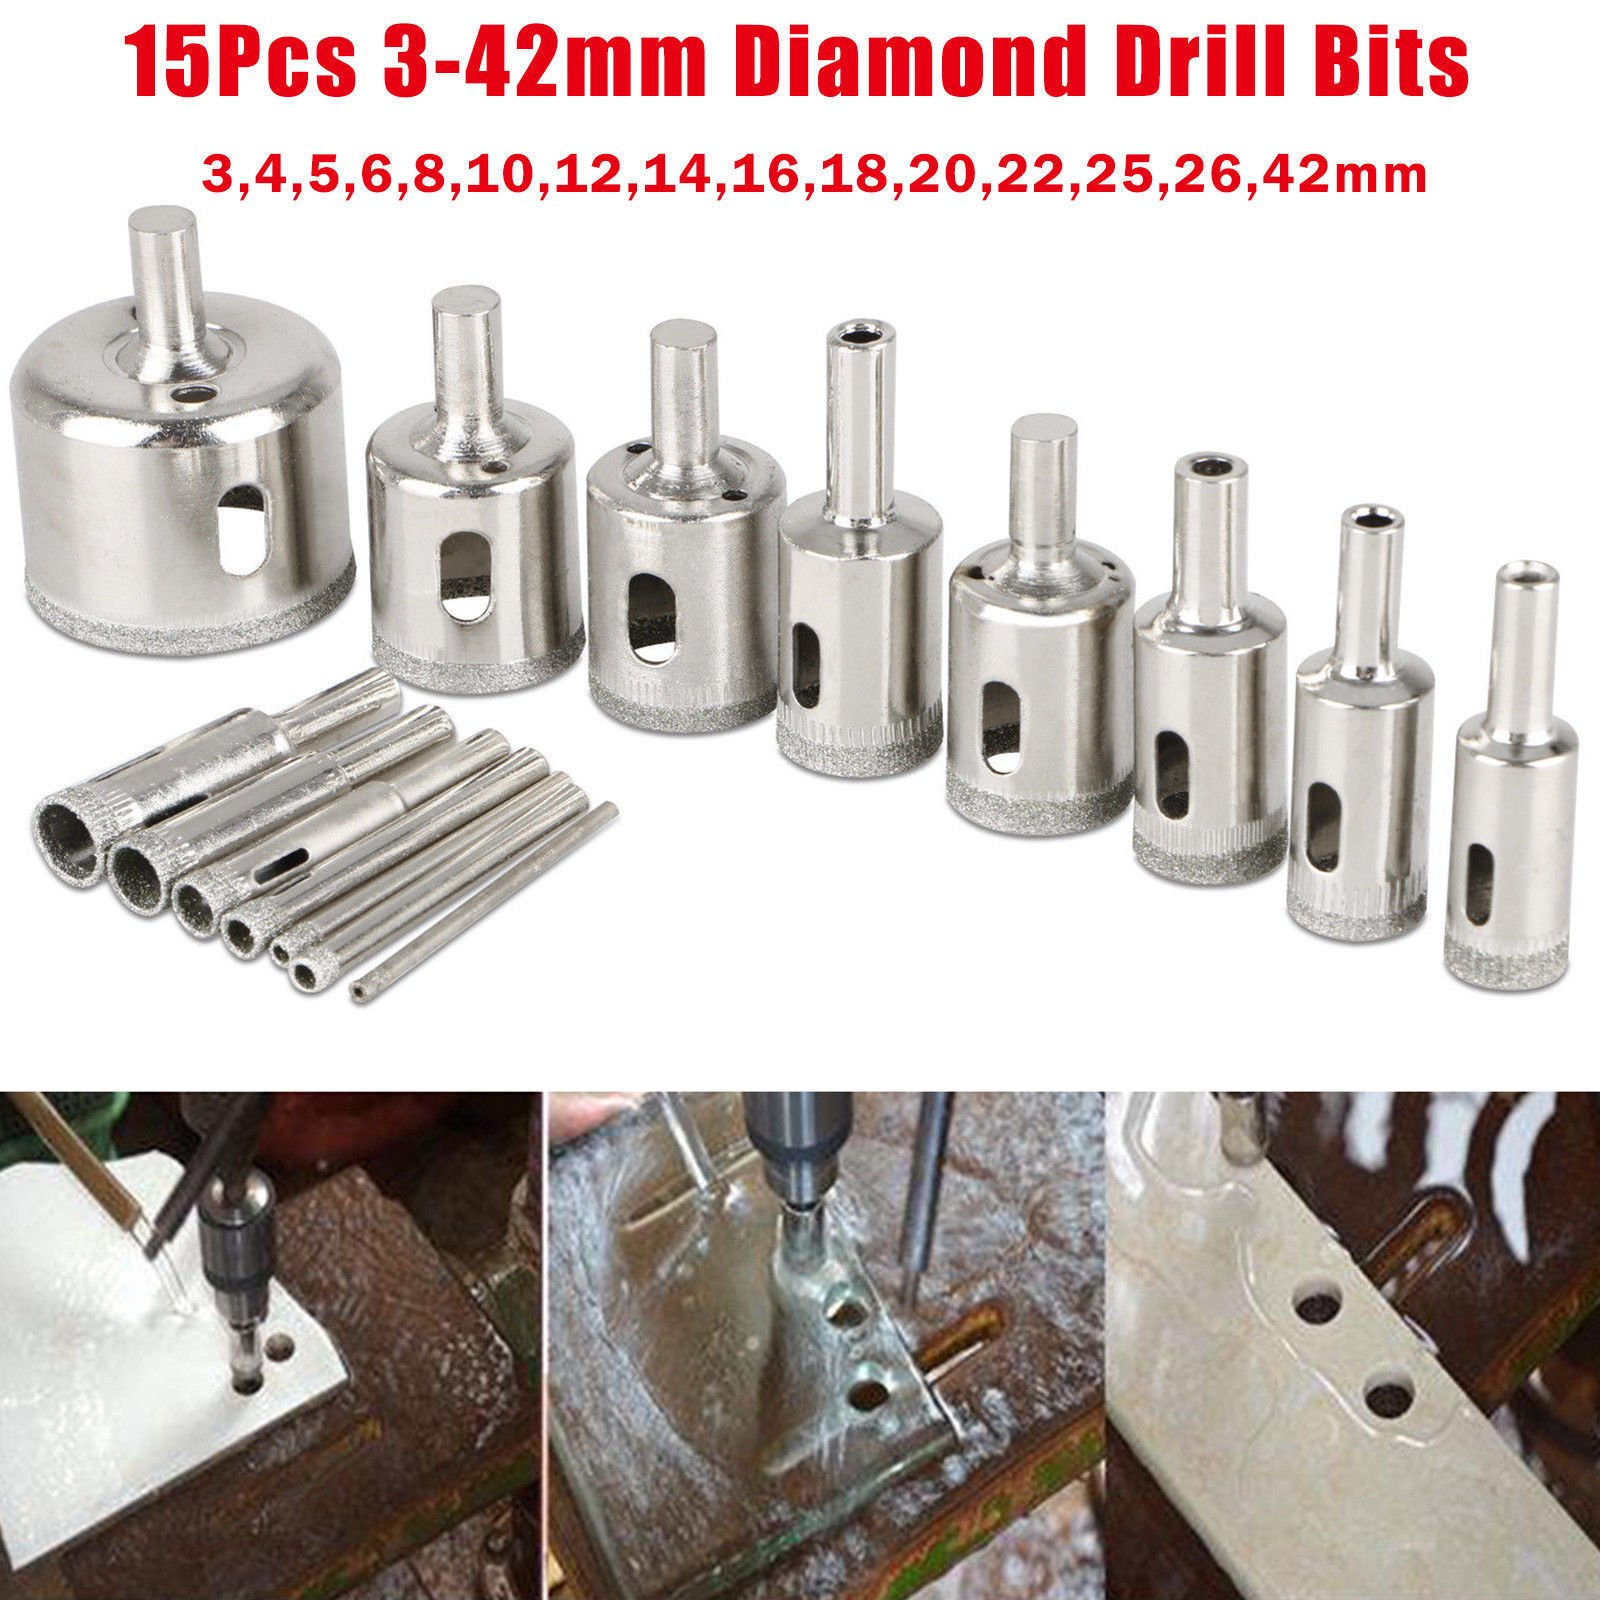 EEEKit 15PCS 3-42mm Diamond Coated Core Hole Saw Drill Bit Set Tools for Glass Marble Tile Granite Neat Smooth Metal Material